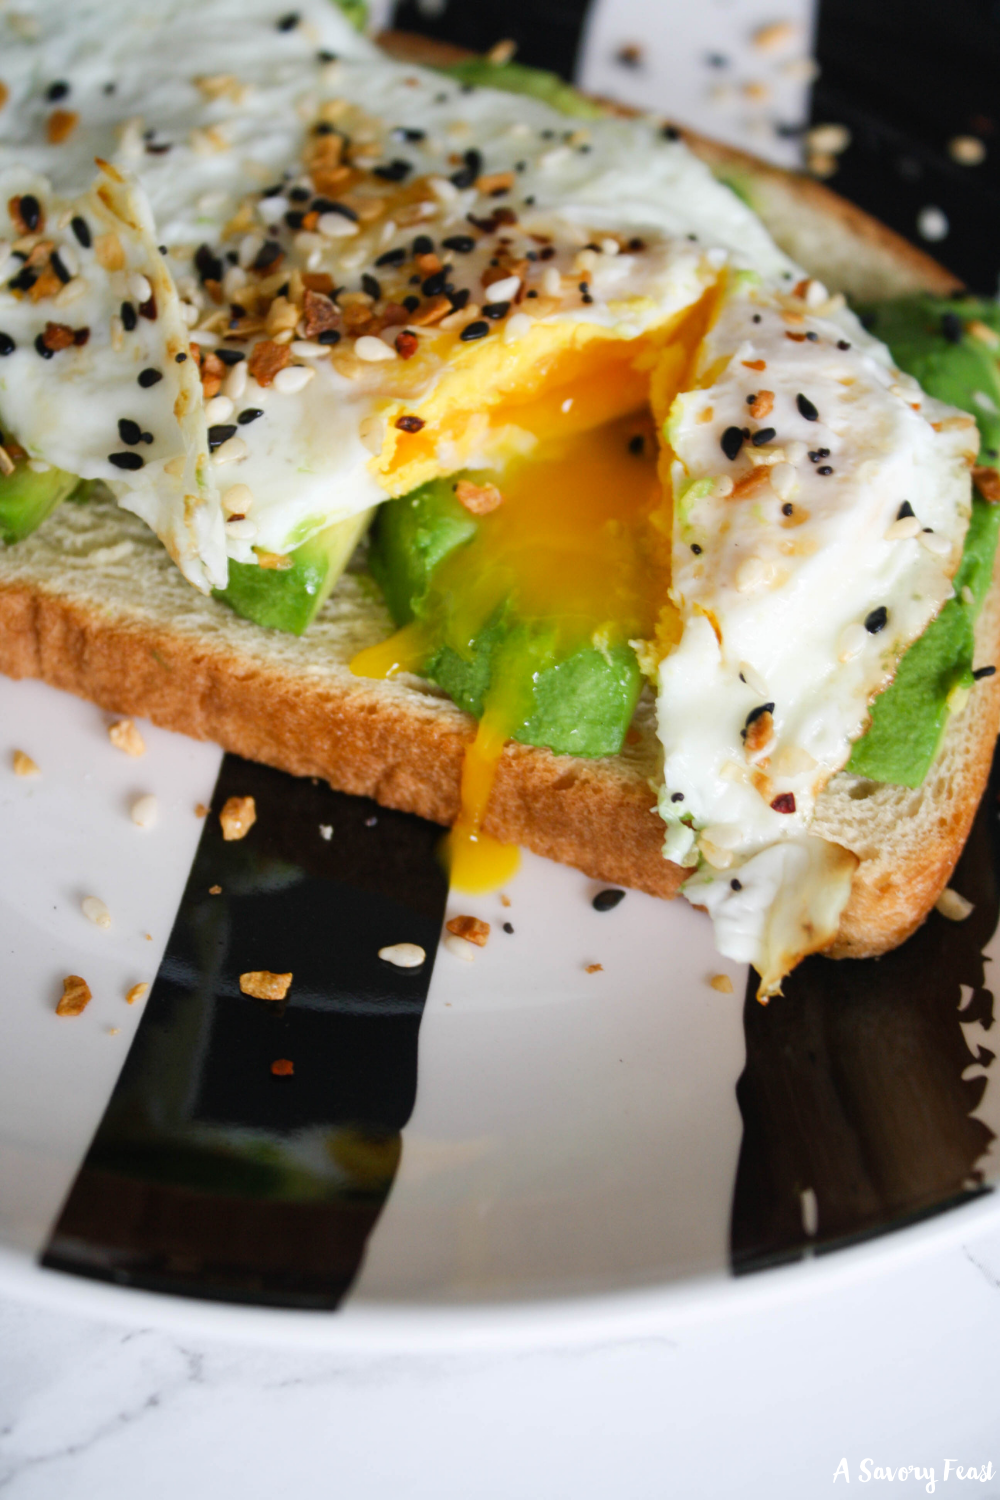 Obsessed with avocado toast? Take it to the next level with this recipe! A tasty breakfast that you can make in 10 minutes, Everything (but the bagel) Egg and Avocado Toast will be your new go-to.